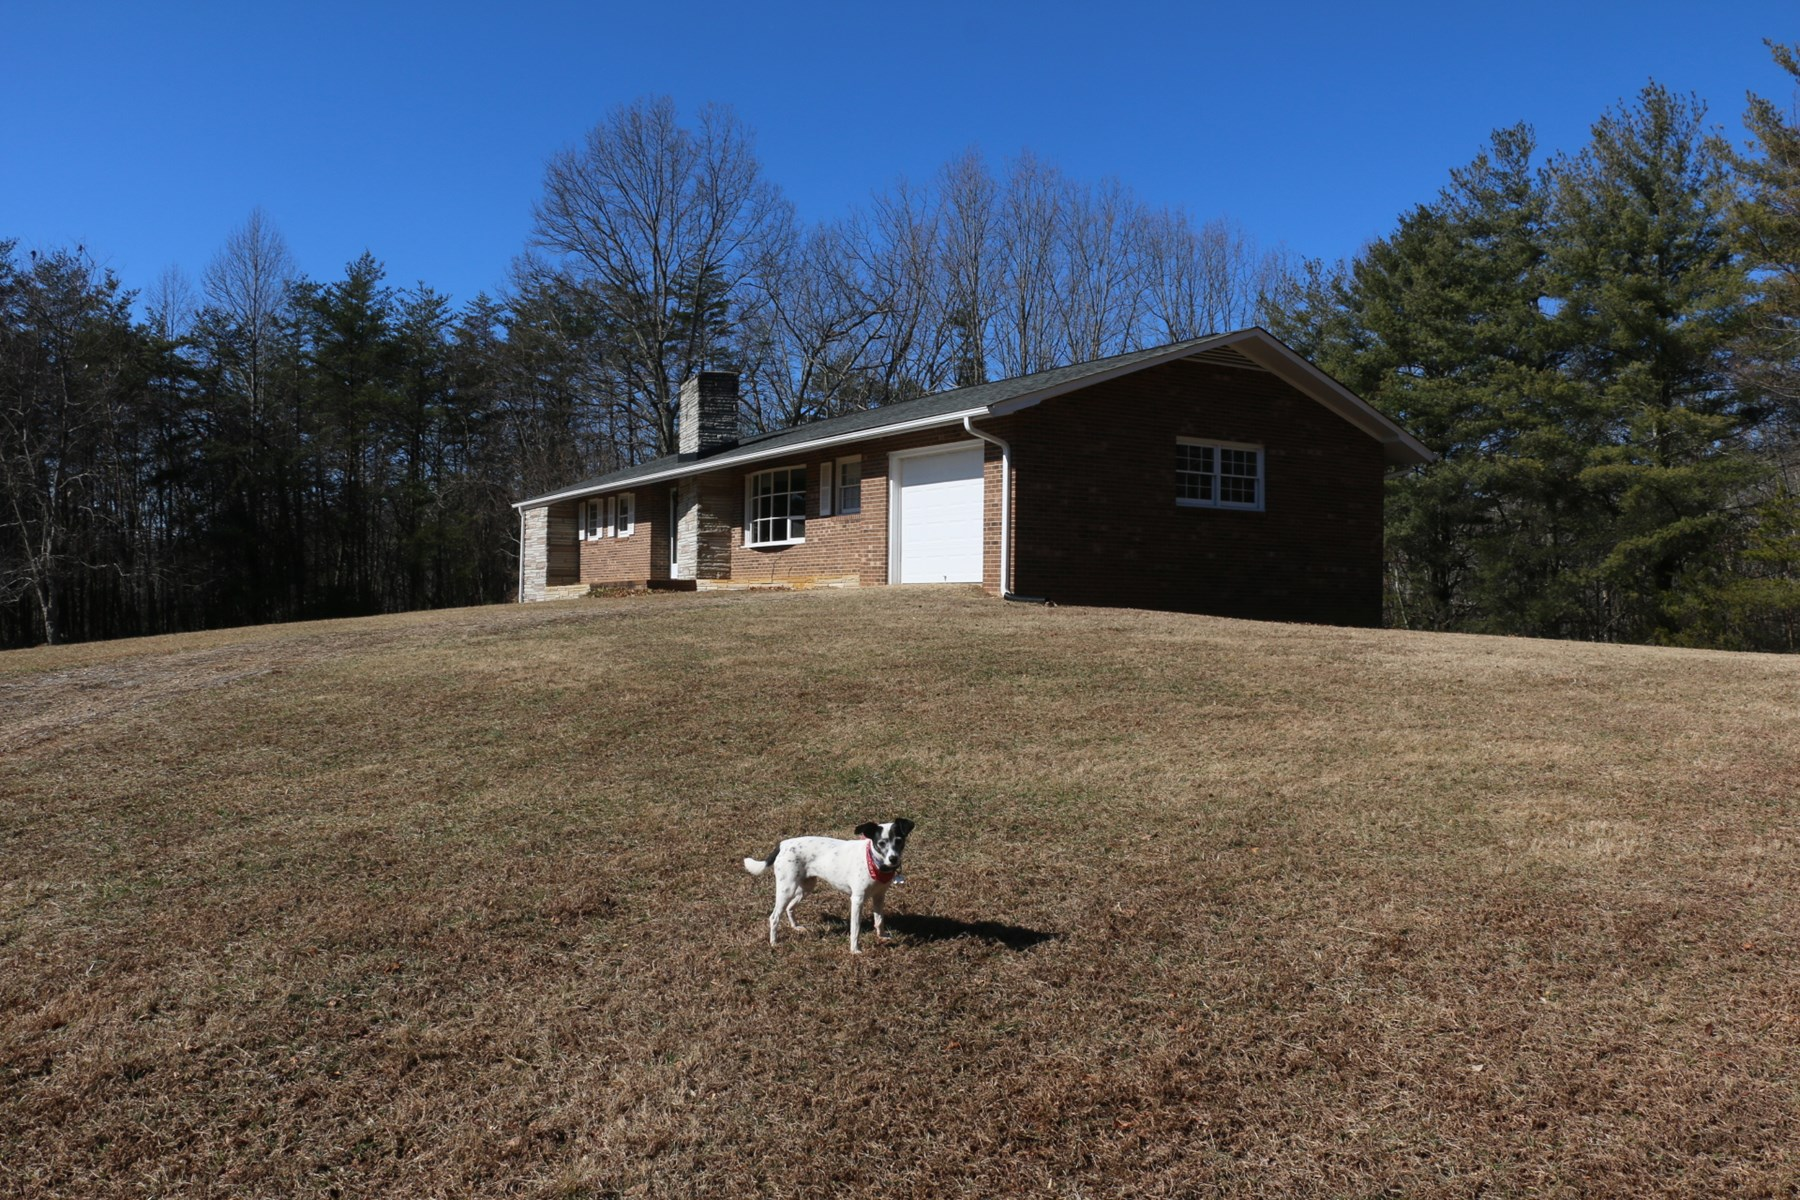 Home for sale in Claudville, VA